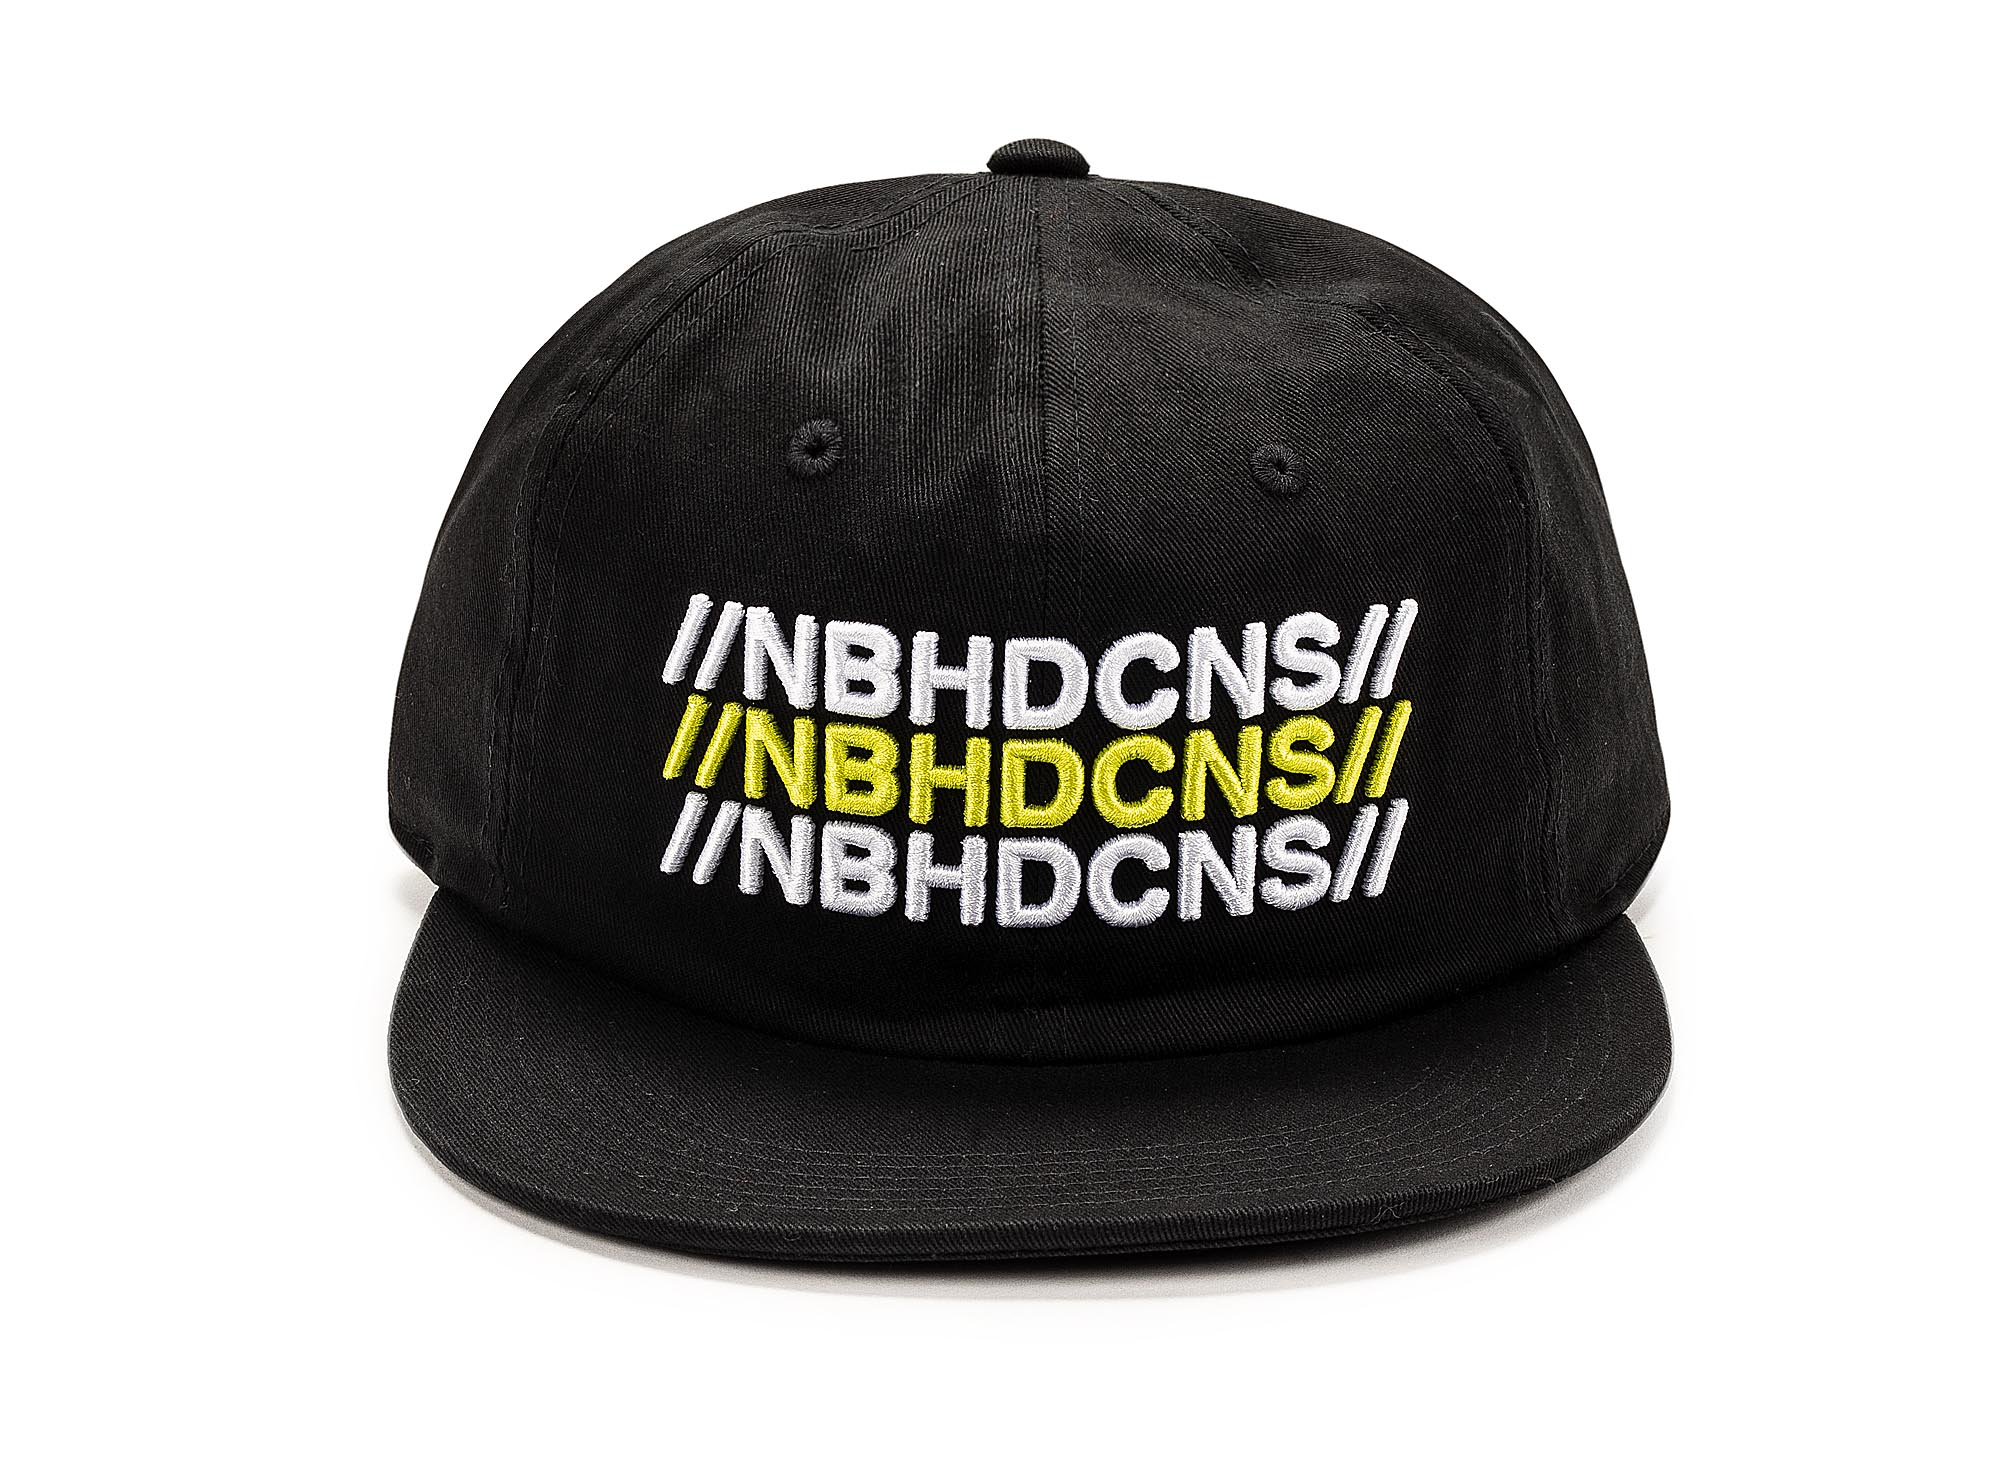 Converse X Neighborhood 6 Panel Hat 'Black'